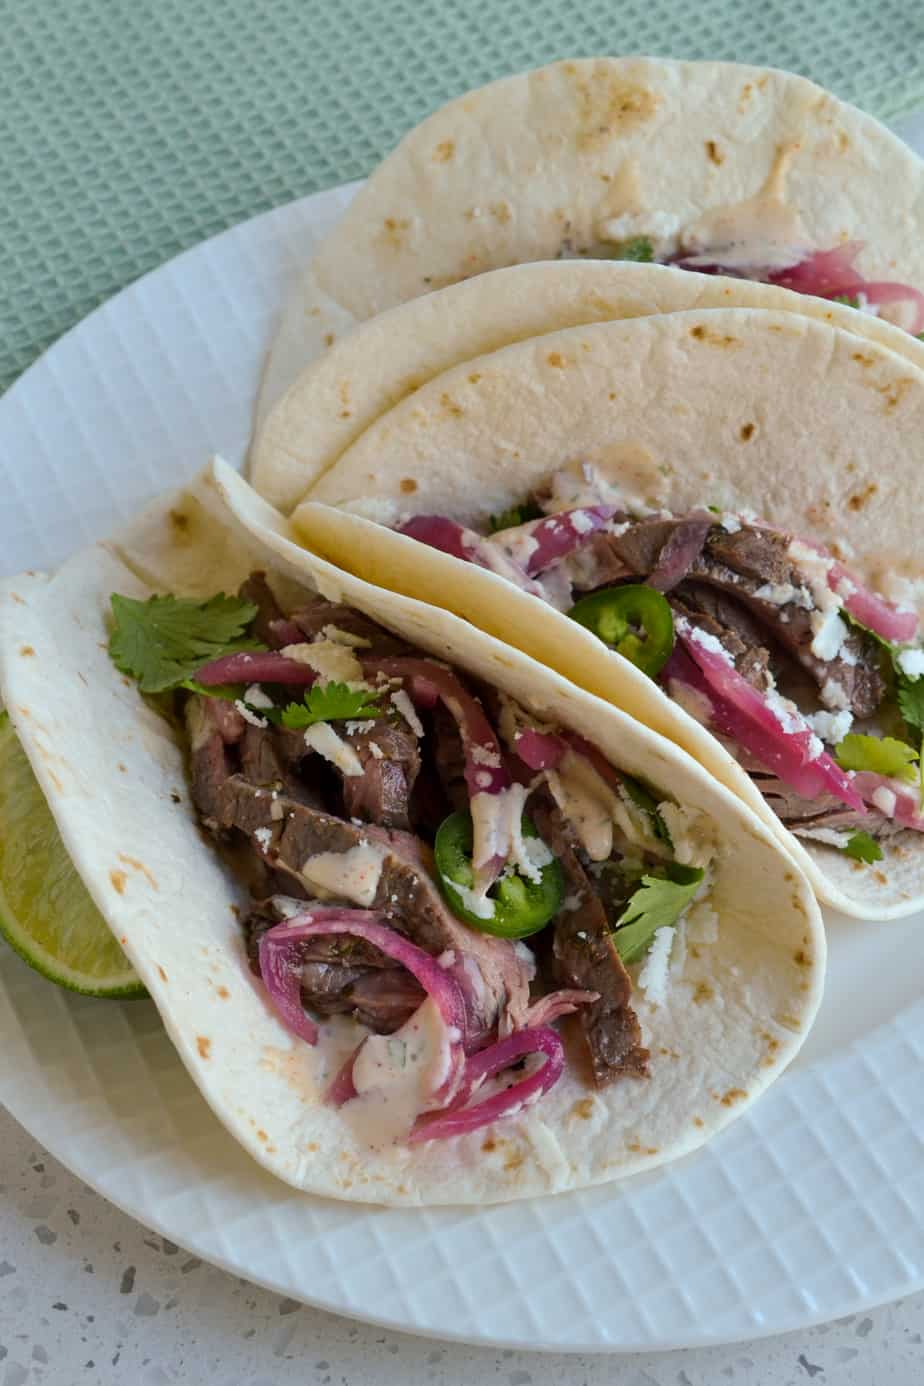 Tortillas filled with grilled steak, pickled onions, and cilantro.